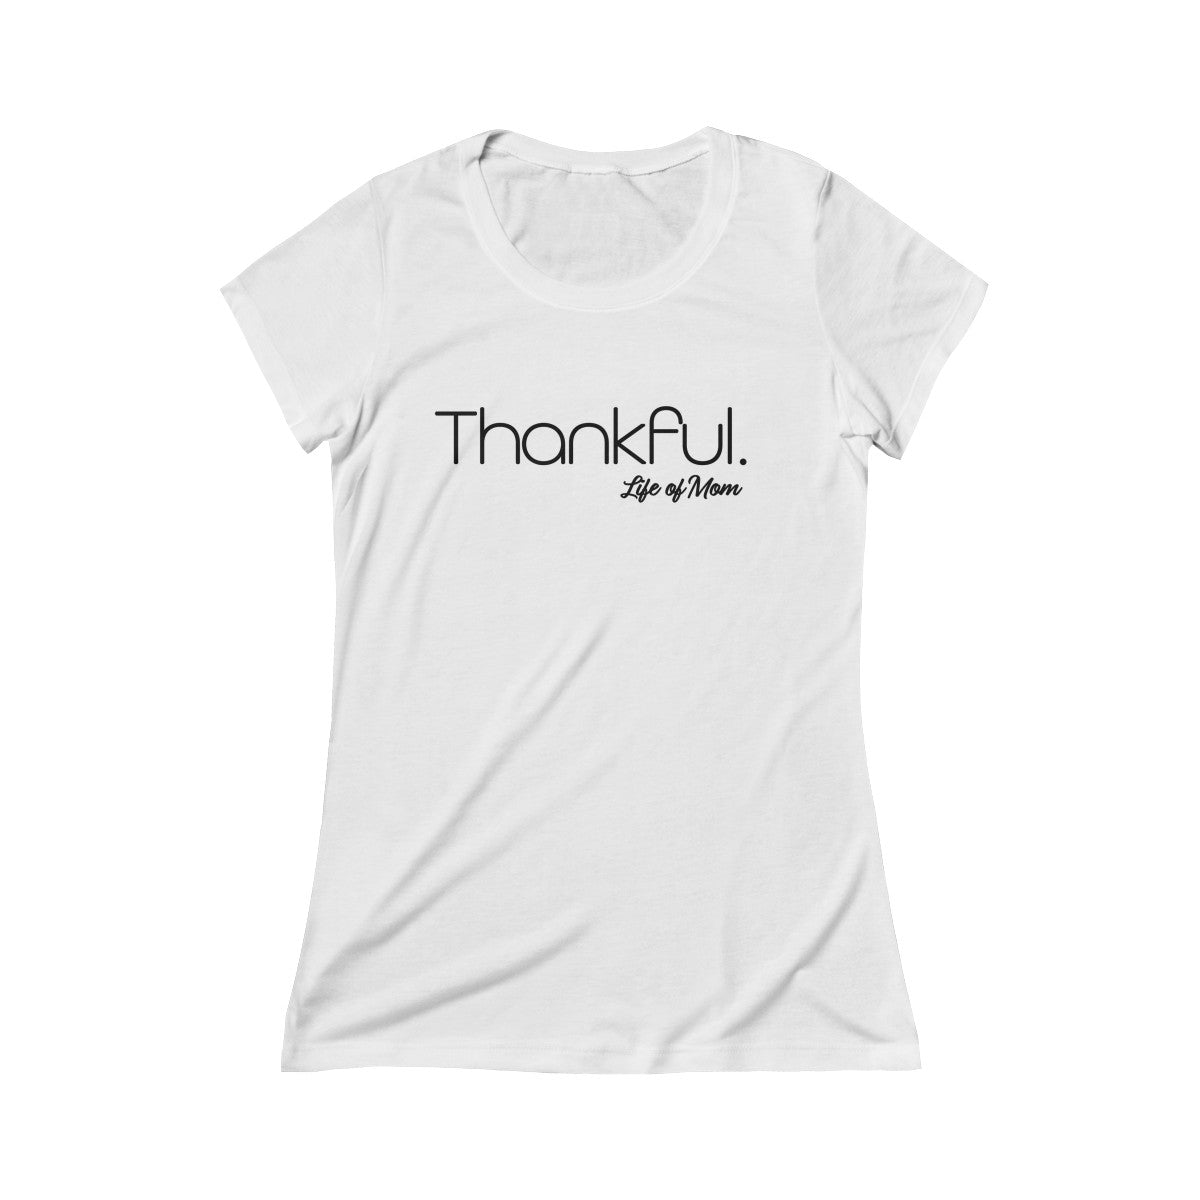 Life of Mom - Thankful T-Shirt